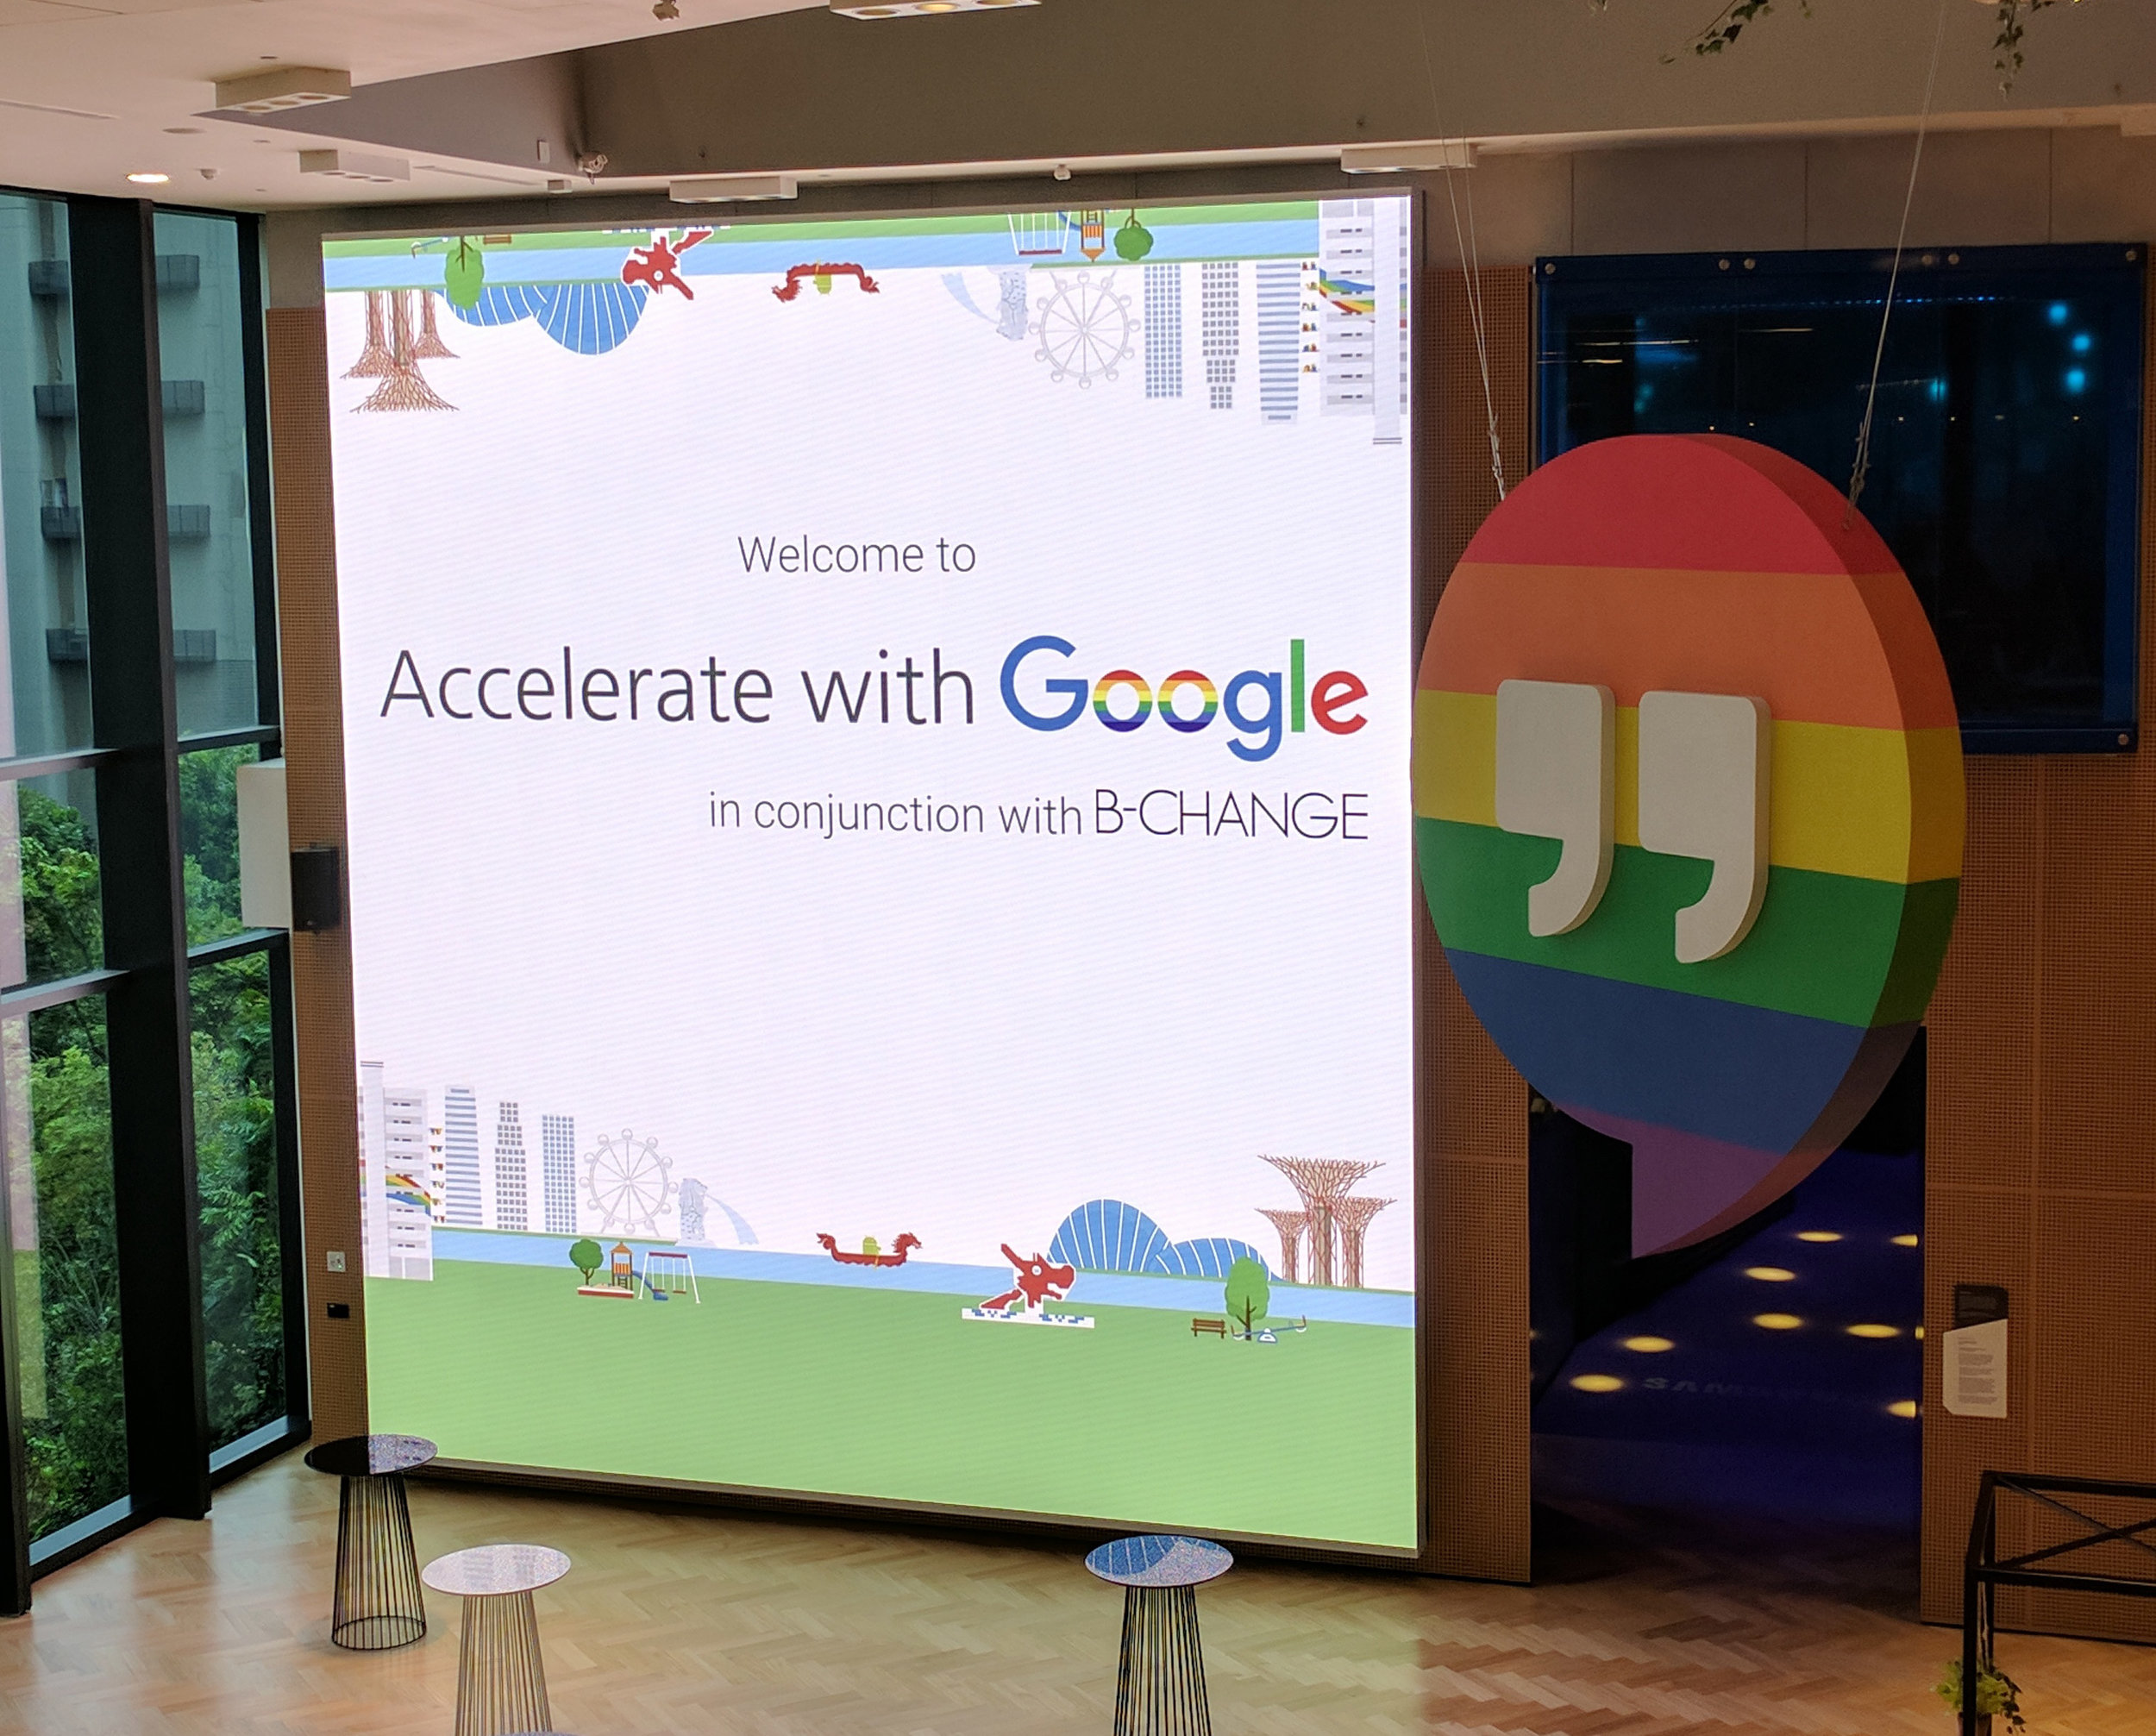 Google demonstrated how they help inclusive startups and small-medium enterprises thrive. It was the first time for B-Change and Google to work together towards making the world a more inclusive place for everyone. The one-day business seminar was held in Singapore on June 29. [Photo Credit: Google]